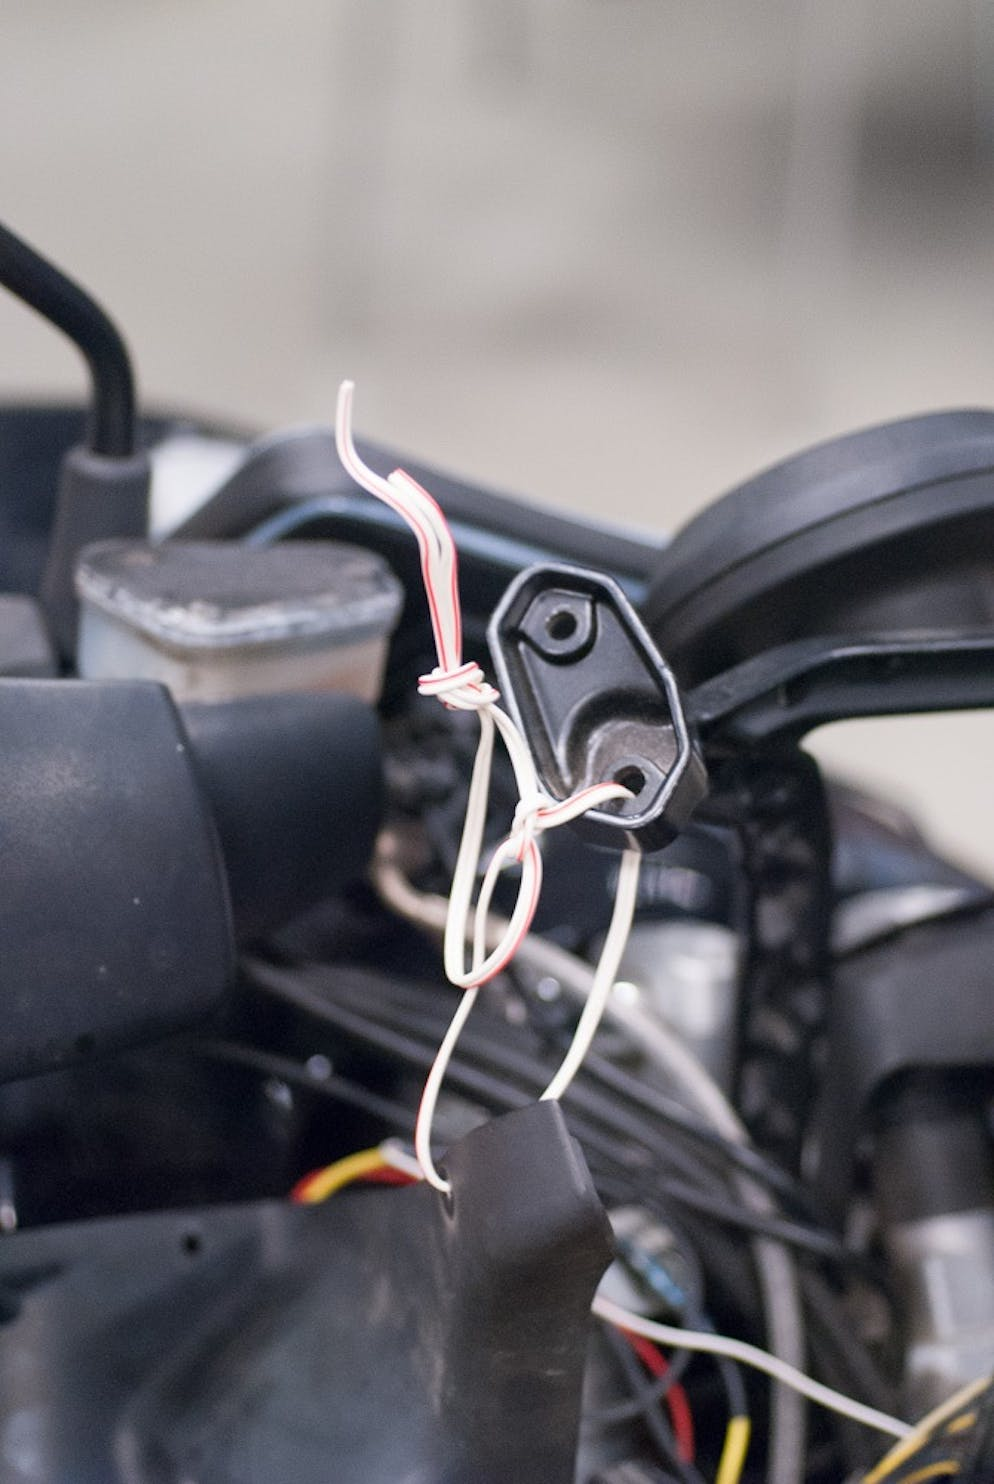 How To Tips For Installing Auxiliary Lights On Your Motorcycle Wire Cable Automotive Female Connector Wiring Harness This Is The Only Acceptable Use Speaker In A Installation Tying Fairings Safe Spot Quality Stranded Actual